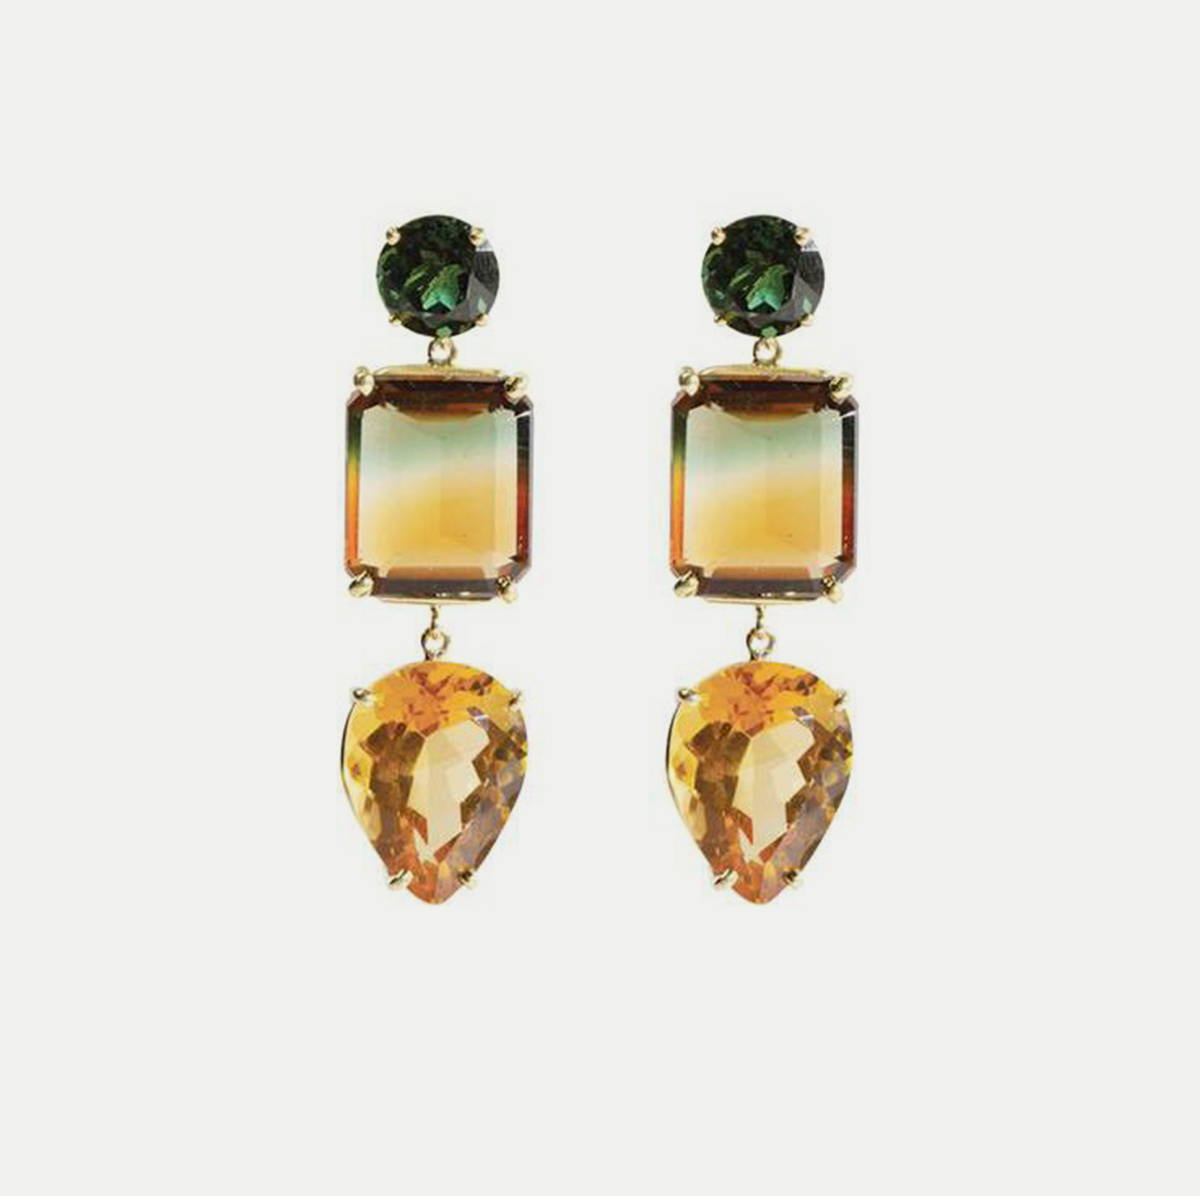 3-Drop Citrine Gemstone Earrings